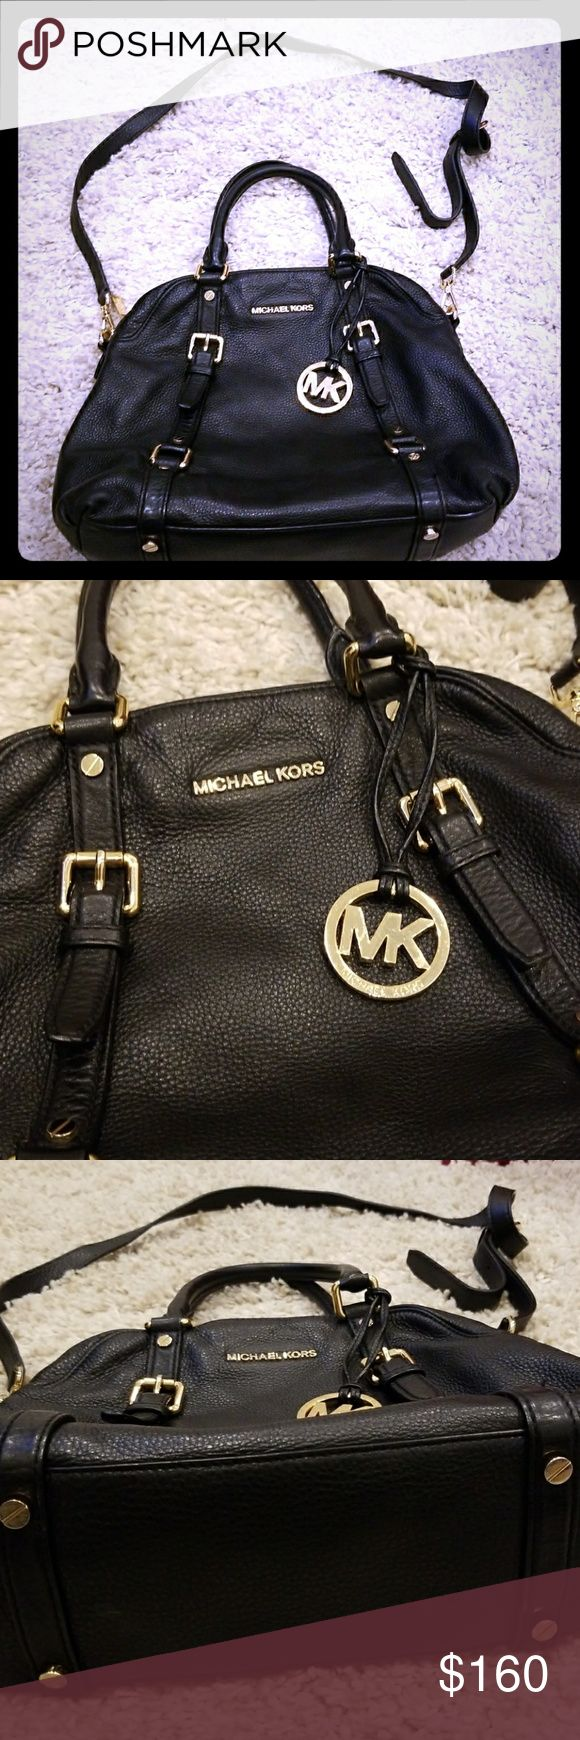 Michael Kors black bag Michael force black leather bag with gold hardware. Top handle and shoulder strap included a pocket on the back lightly worn no scratches or damage to the bag or handles. Perfect condition. Michael Kors Bags Satchels